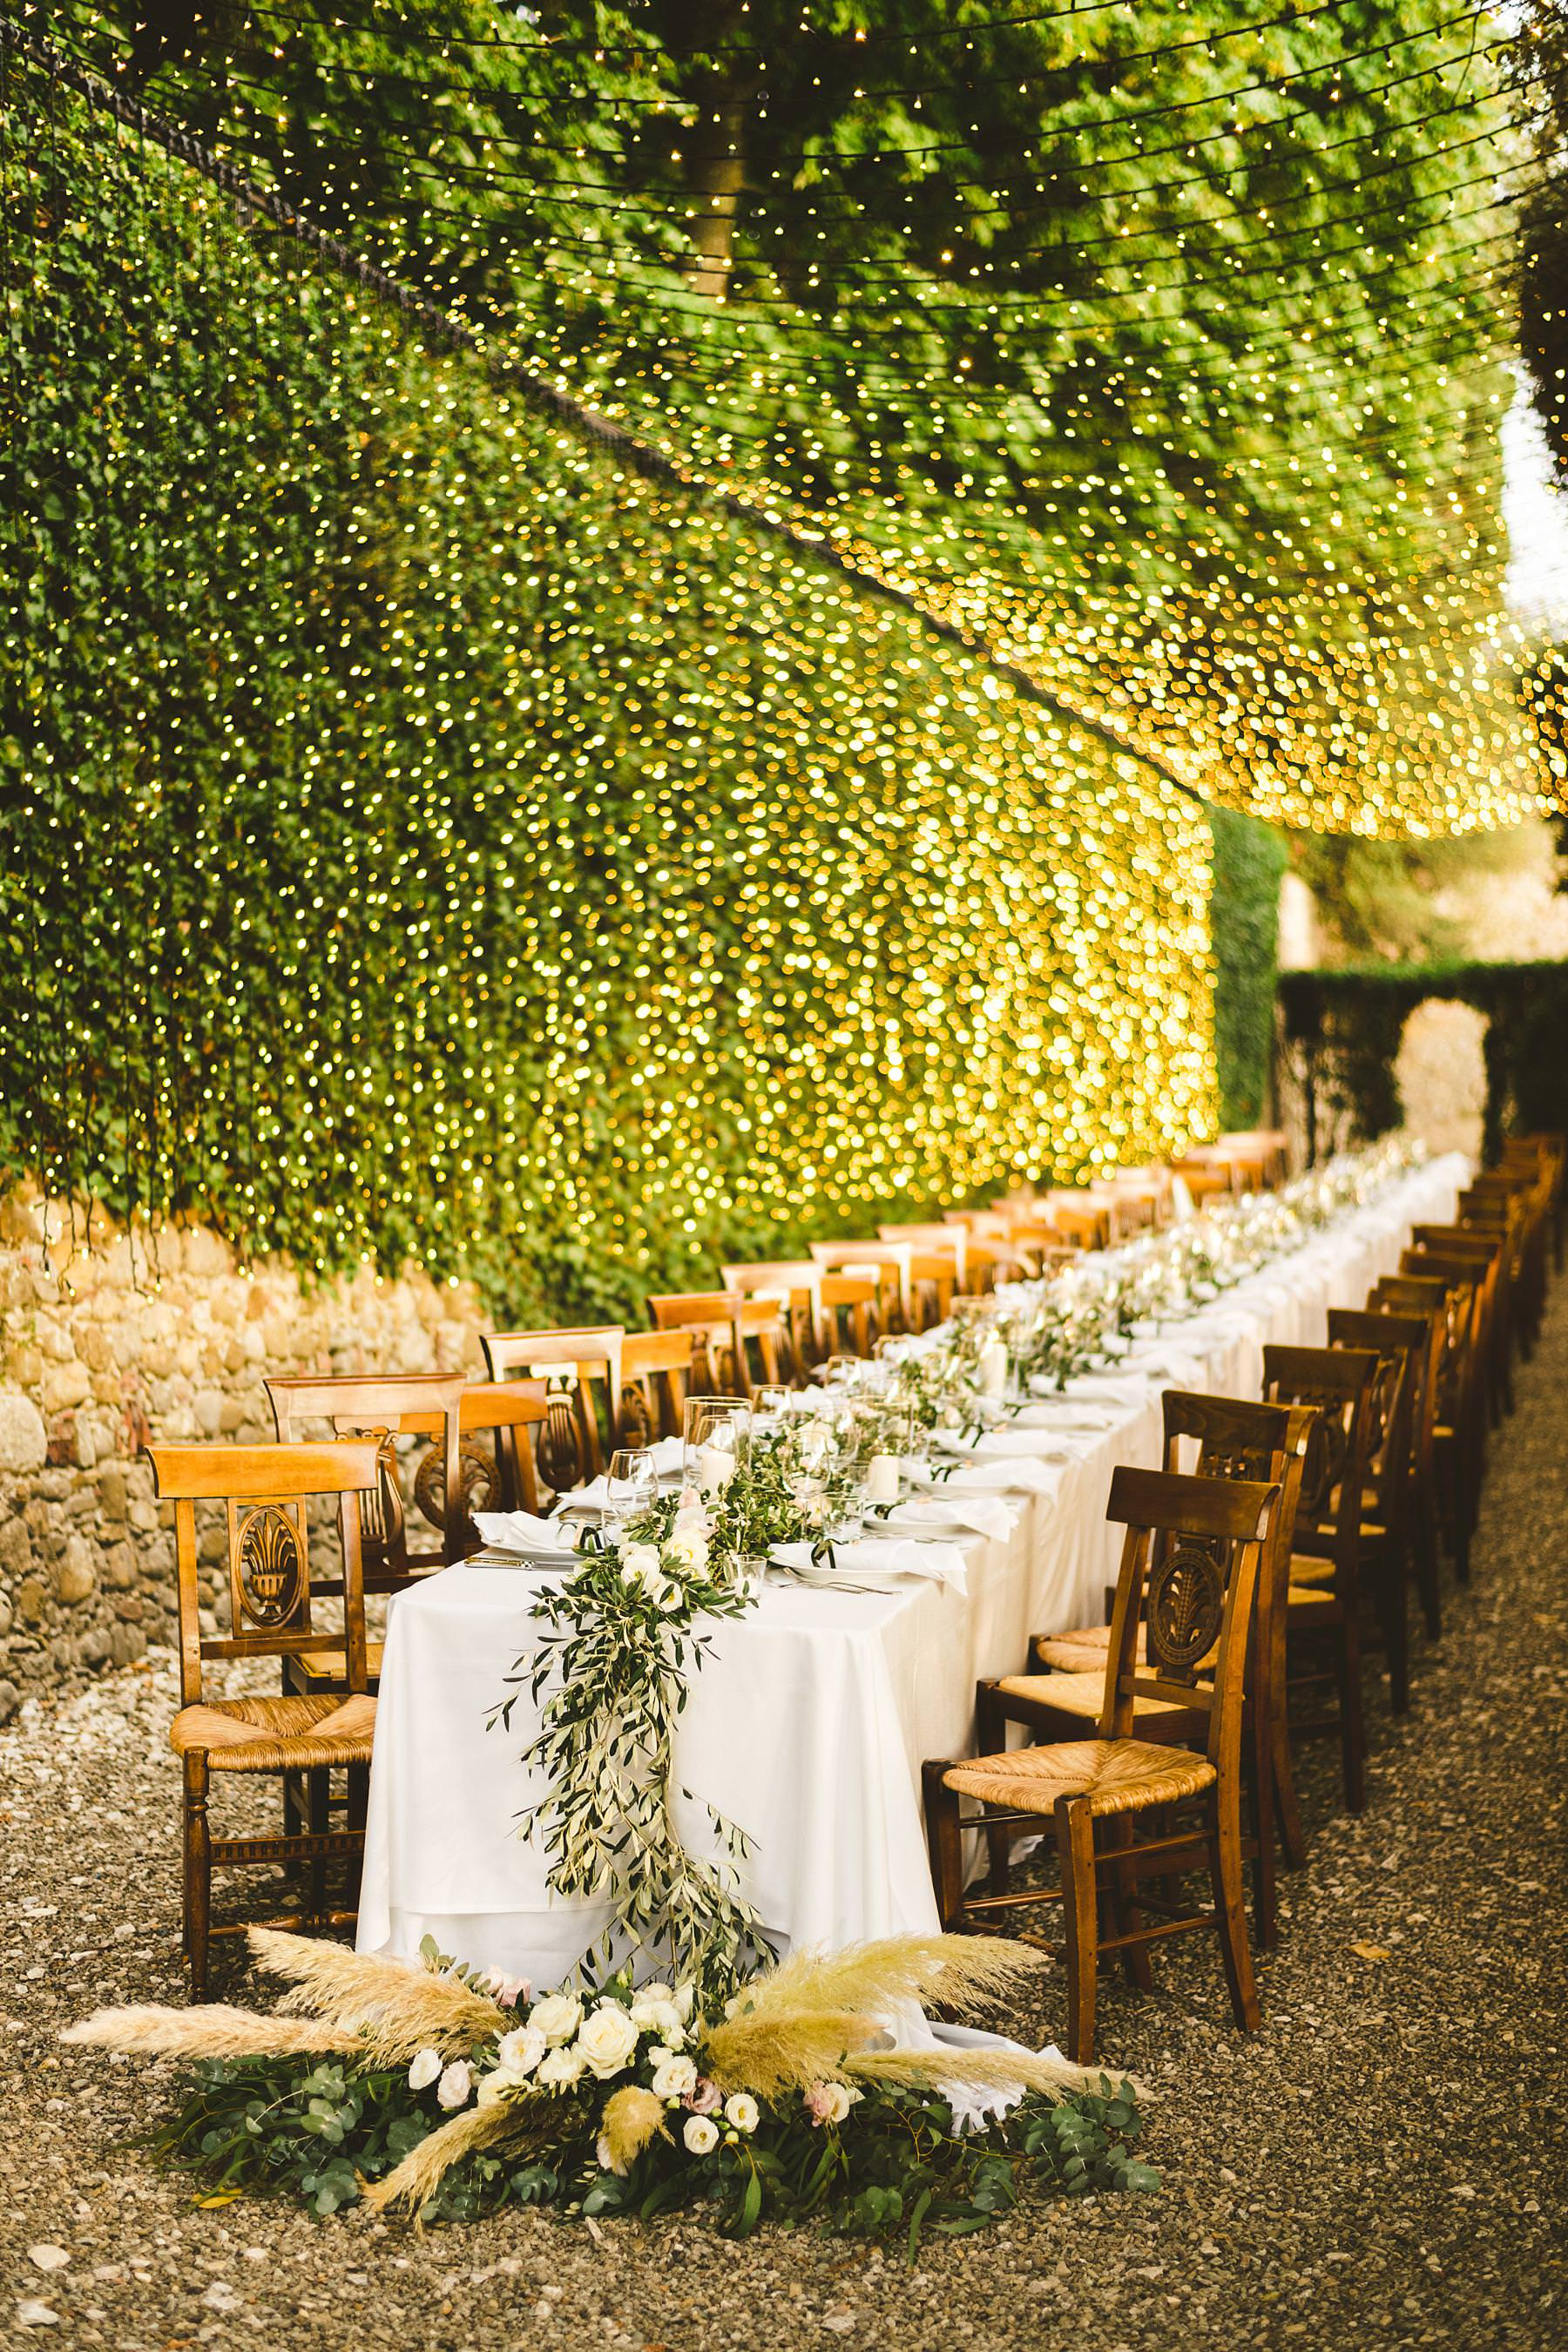 Incredible care of every details for this imperial table outdoor dinner decor at the historic residence of Villa Il Poggiale in the heart of Chianti, Tuscany